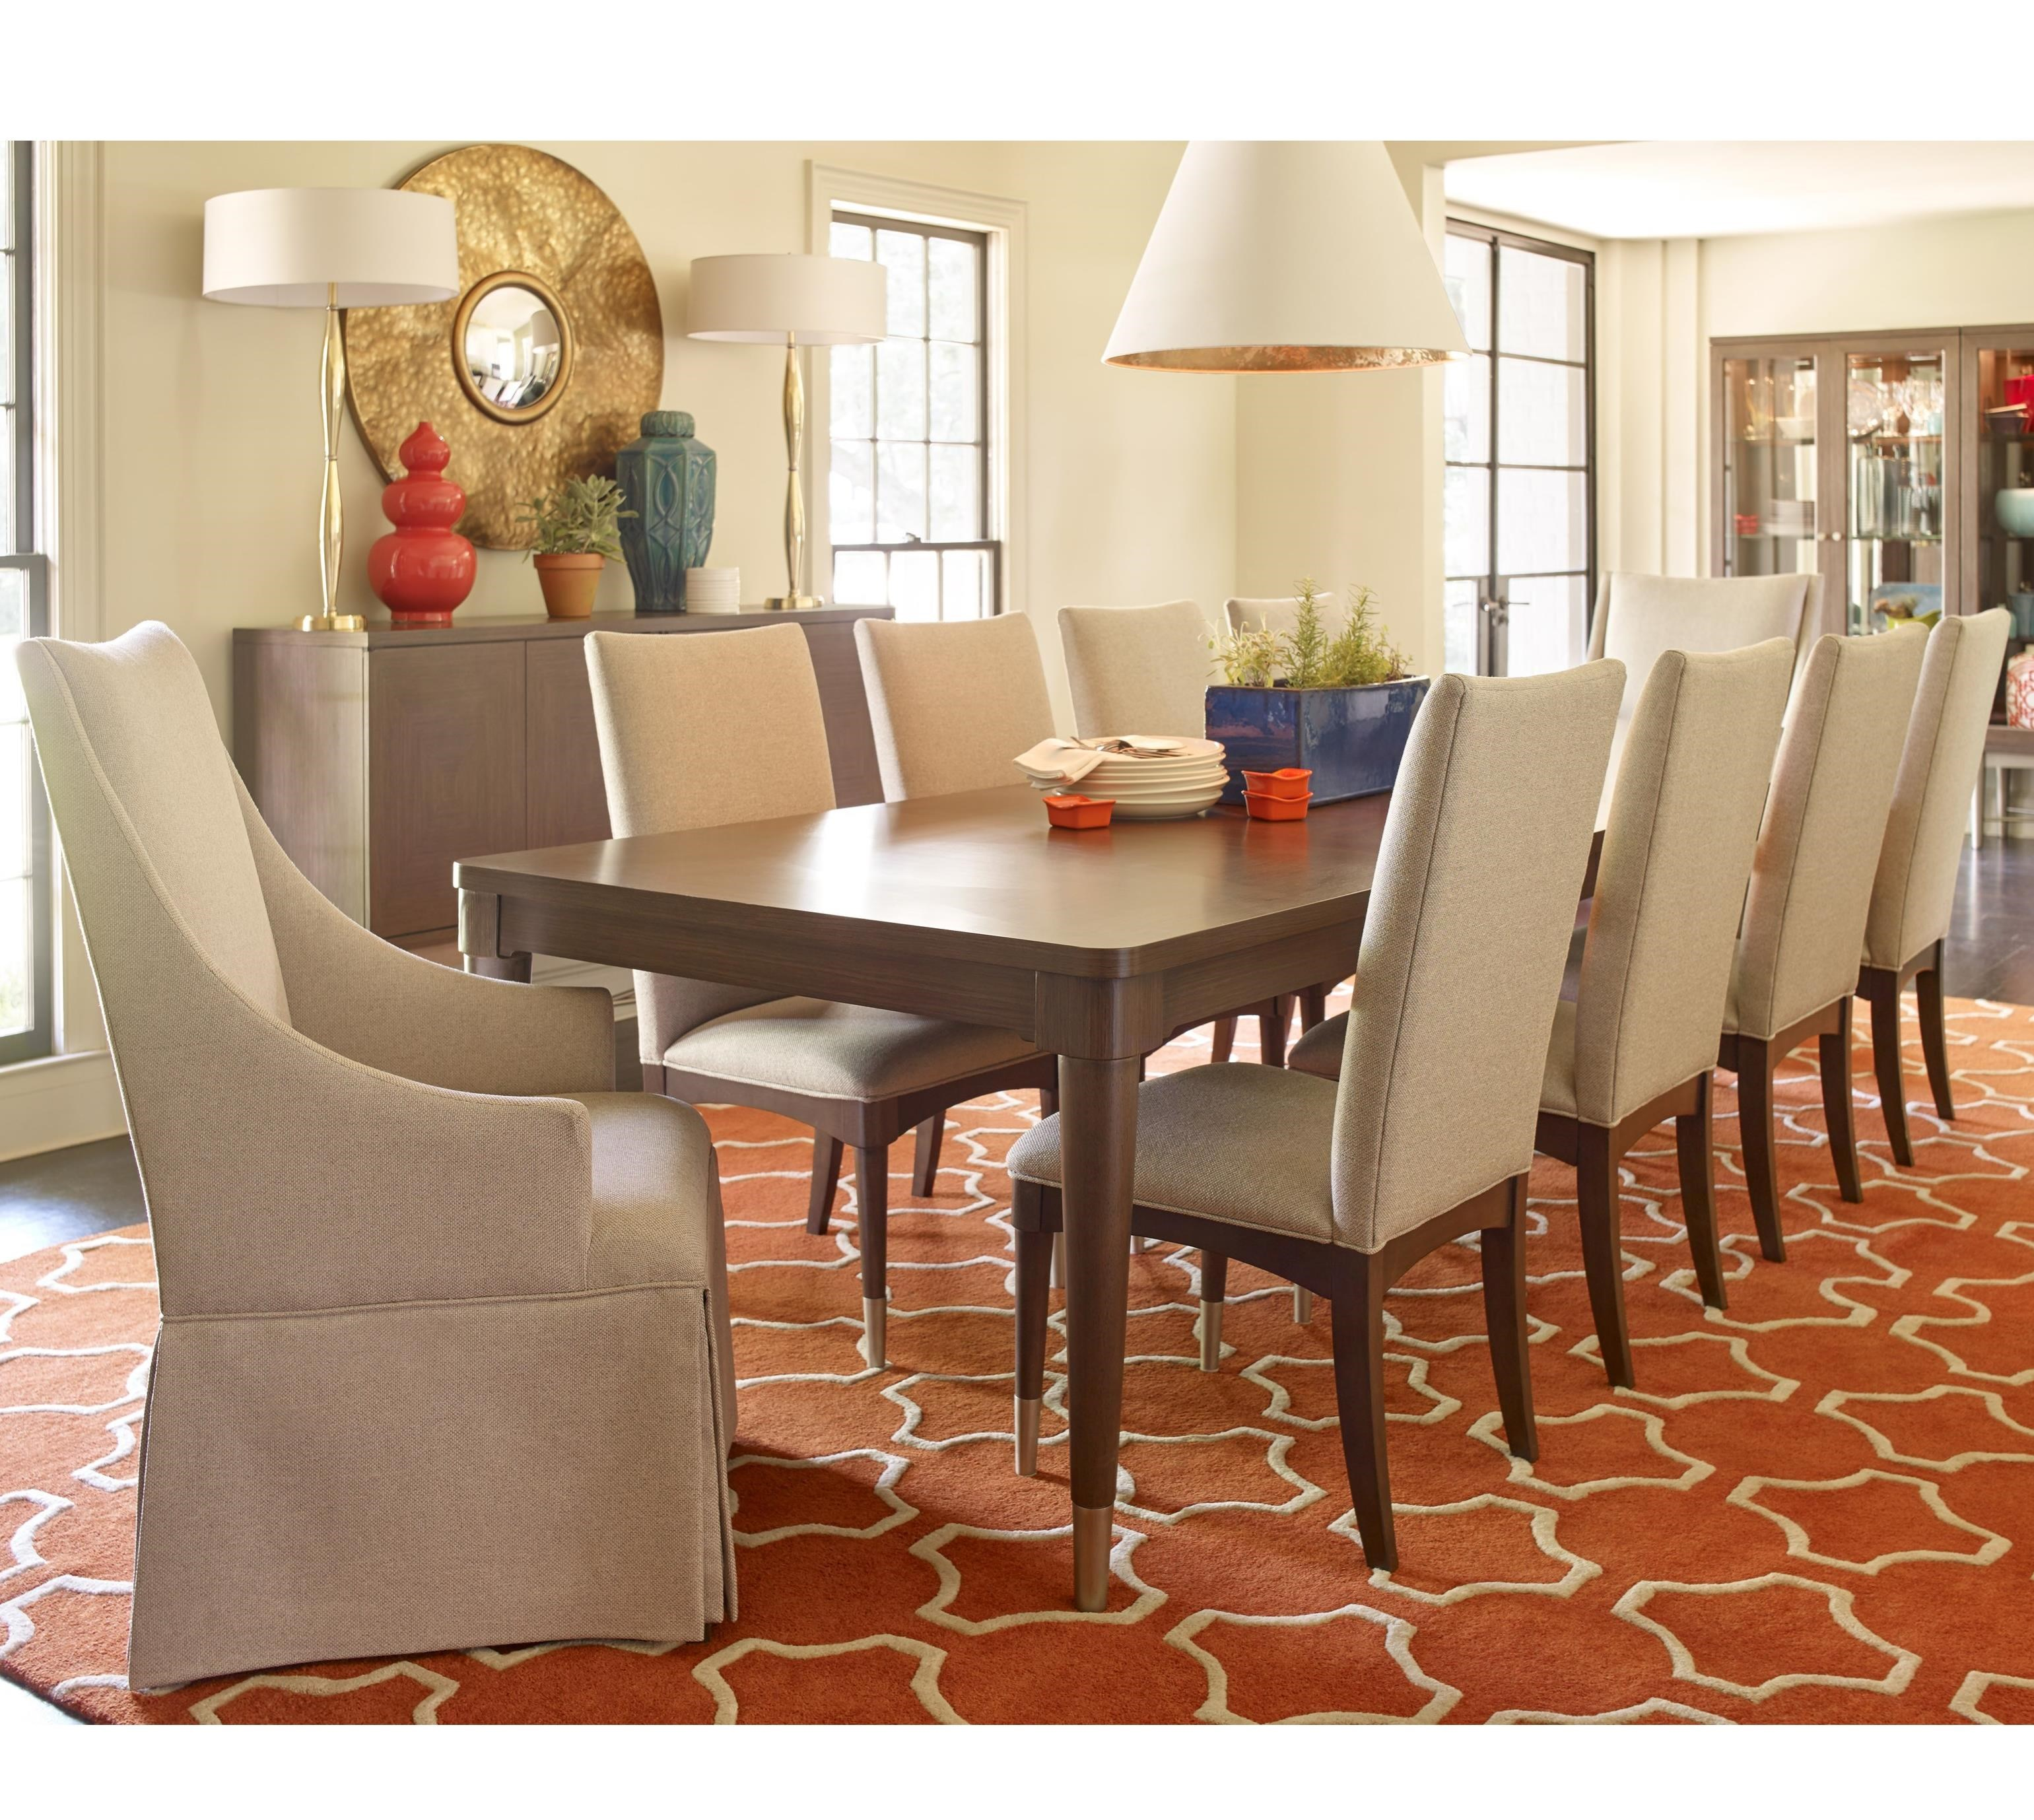 Rachael Ray Home by Legacy Classic Soho Dining Room Group - Item Number: 6020 Dining Room Group 3